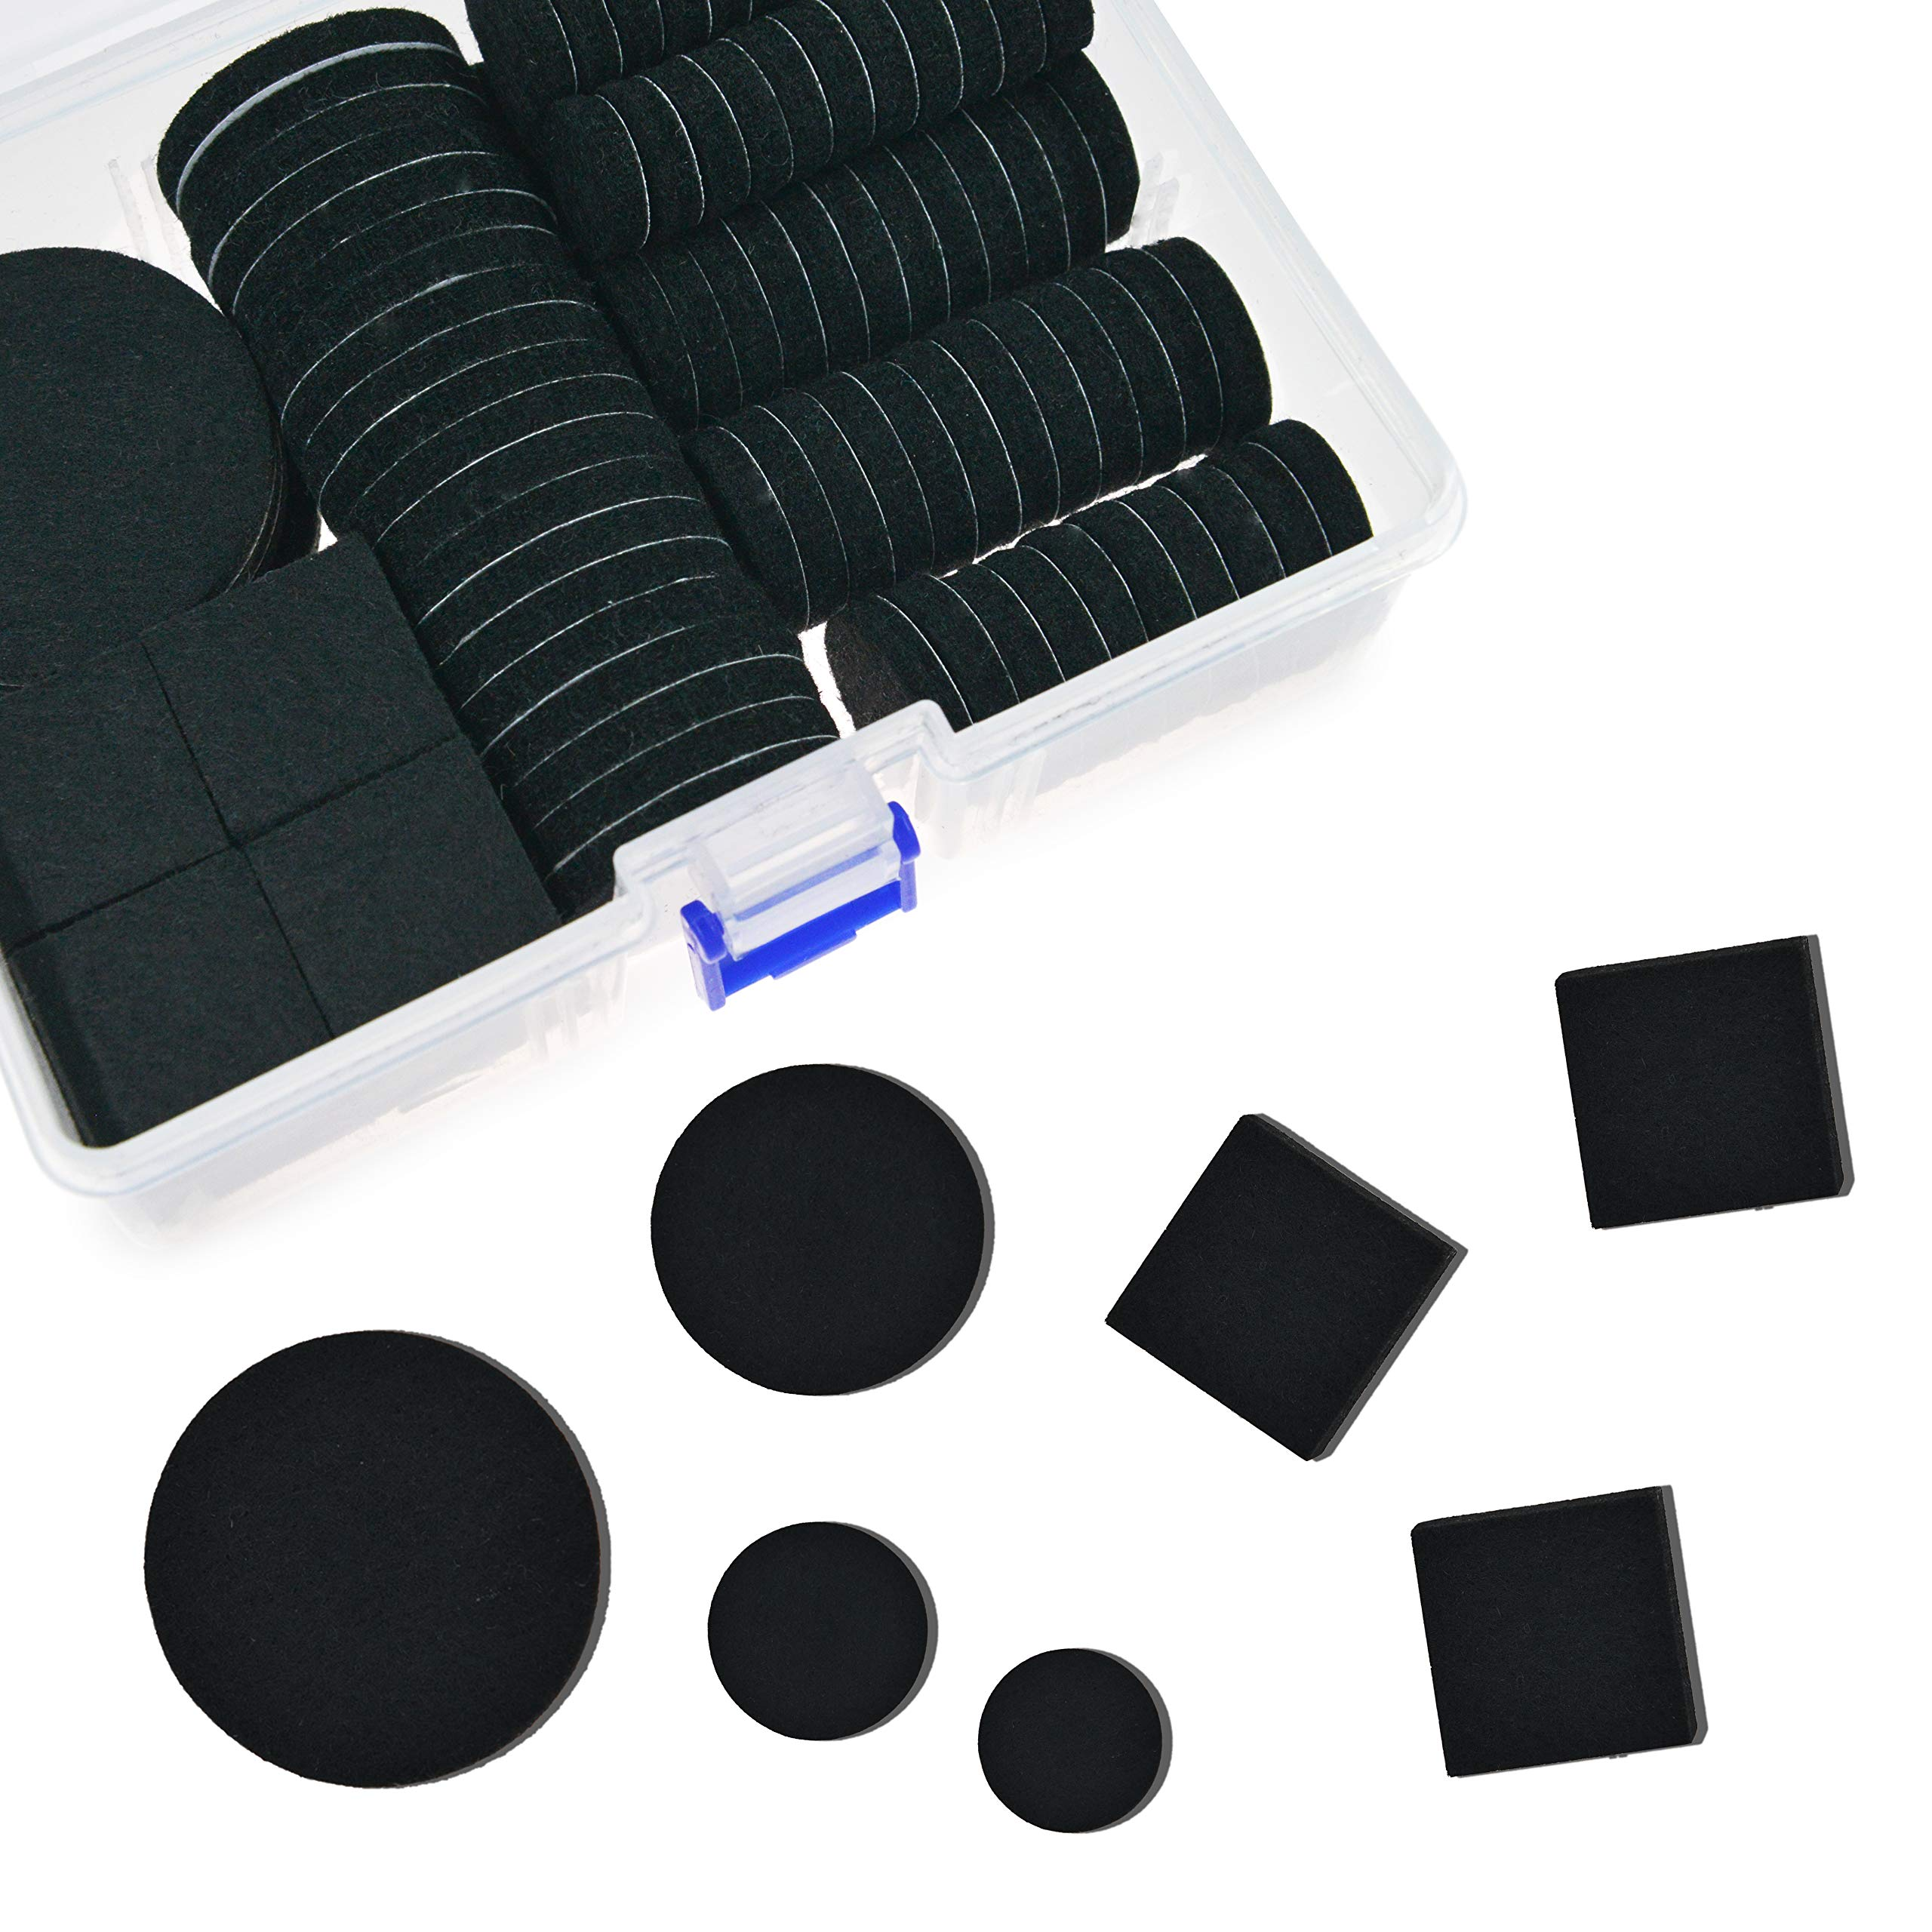 TTMOW Various Sizes Furniture Pads 142pcs Self Adhesive Tape,Best Floor Protectors for Anti Scratch - Suitable for All The Furniture